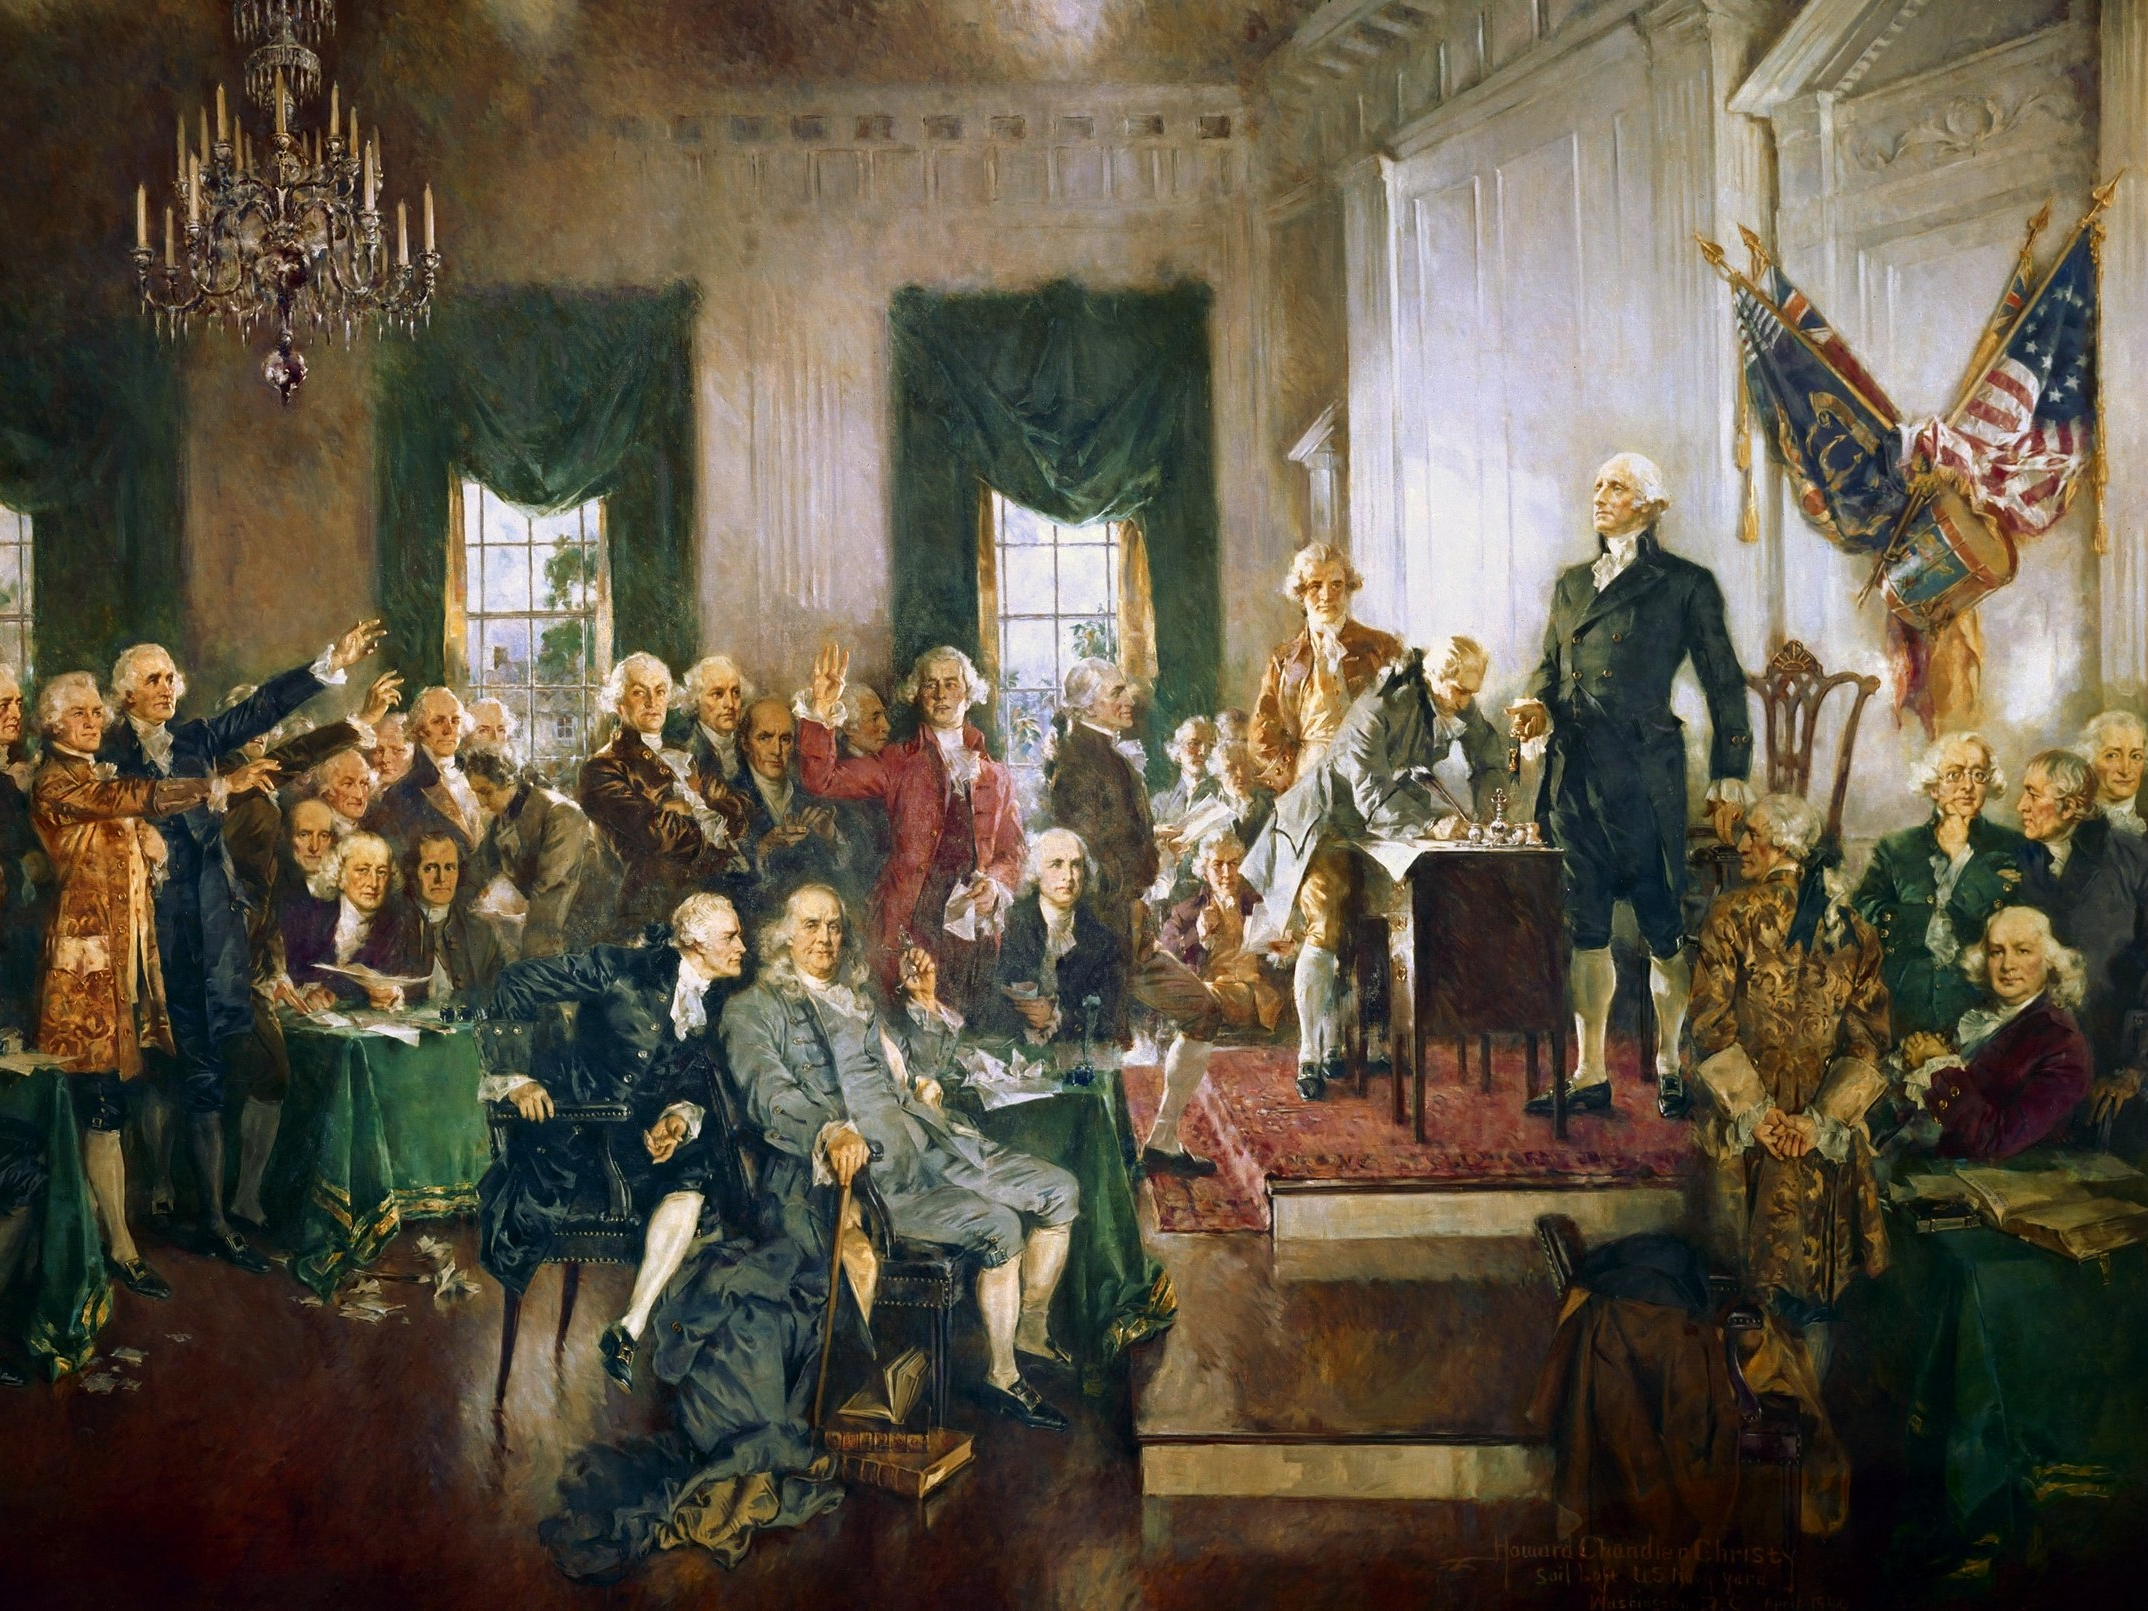 Independent delegates met in Philadelphia to write the Constitution of the new United States. The Bill of Rights amended it to protect the rights of the citizens. States ratified it into law in 1788. They inaugurated Washington, the first US President. He appointed leaders of government and stepped down after eight.